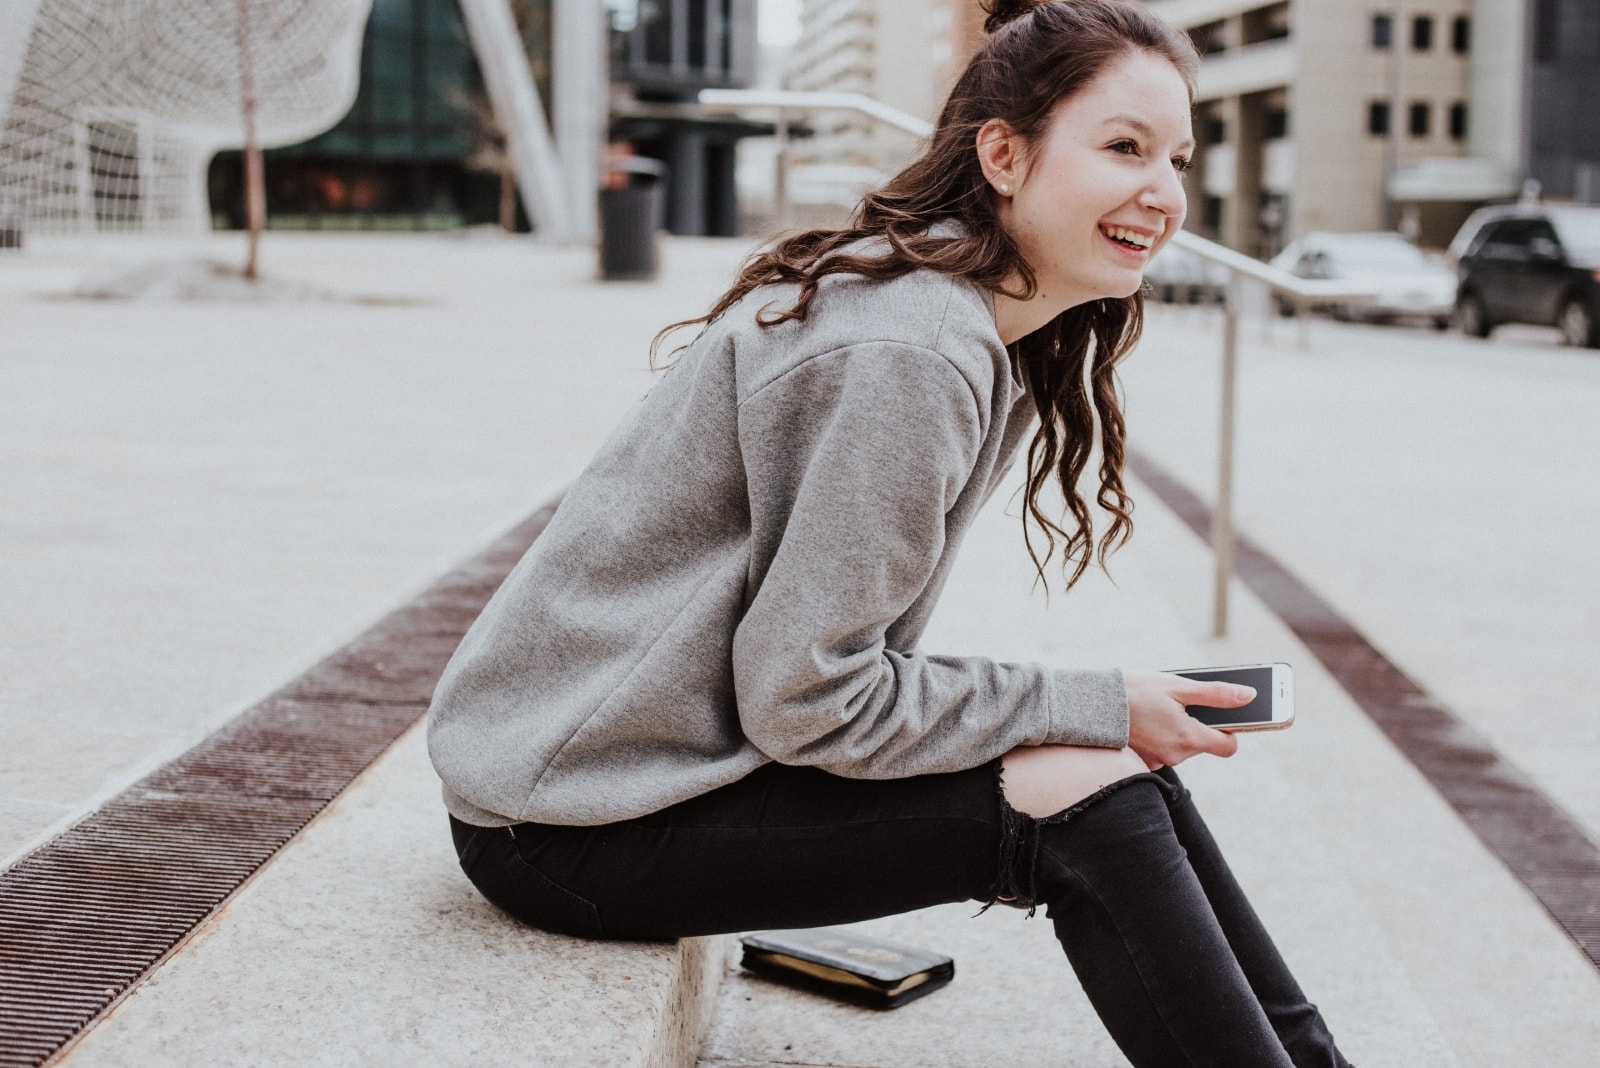 woman in gray sweatshirt sitting on stairs smiling